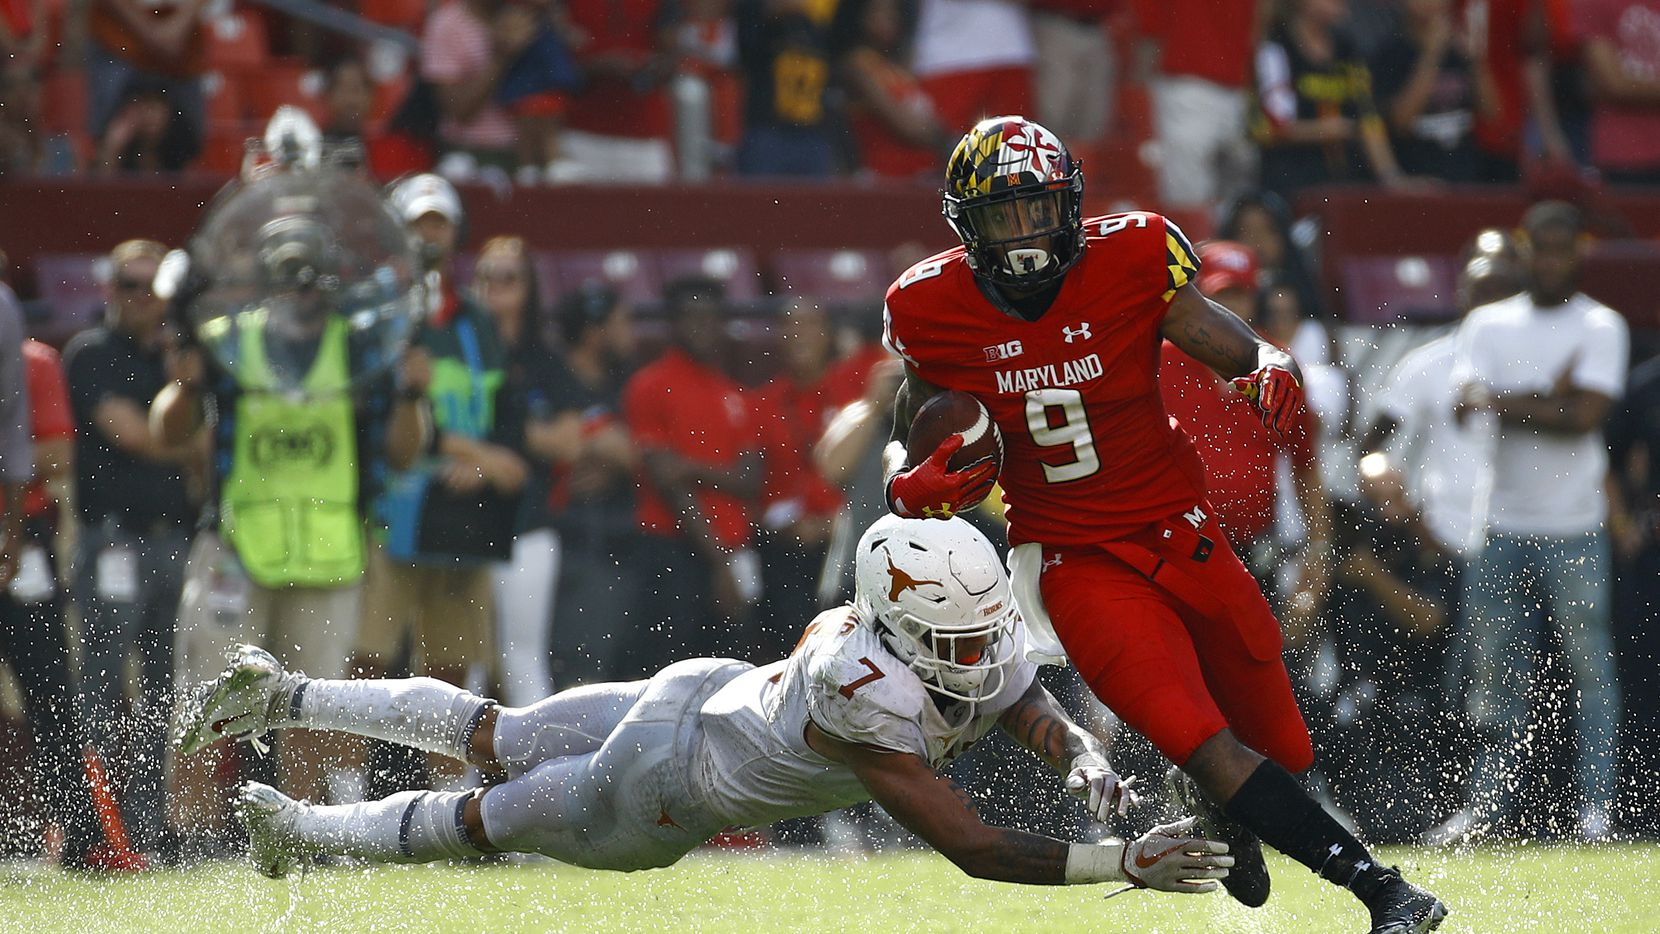 Maryland wide receiver Jahrvis Davenport, right, rushes past Texas defensive back Caden Sterns in the second half of an NCAA college football game, Saturday, Sept. 1, 2018, in Landover, Md. (AP Photo/Patrick Semansky)